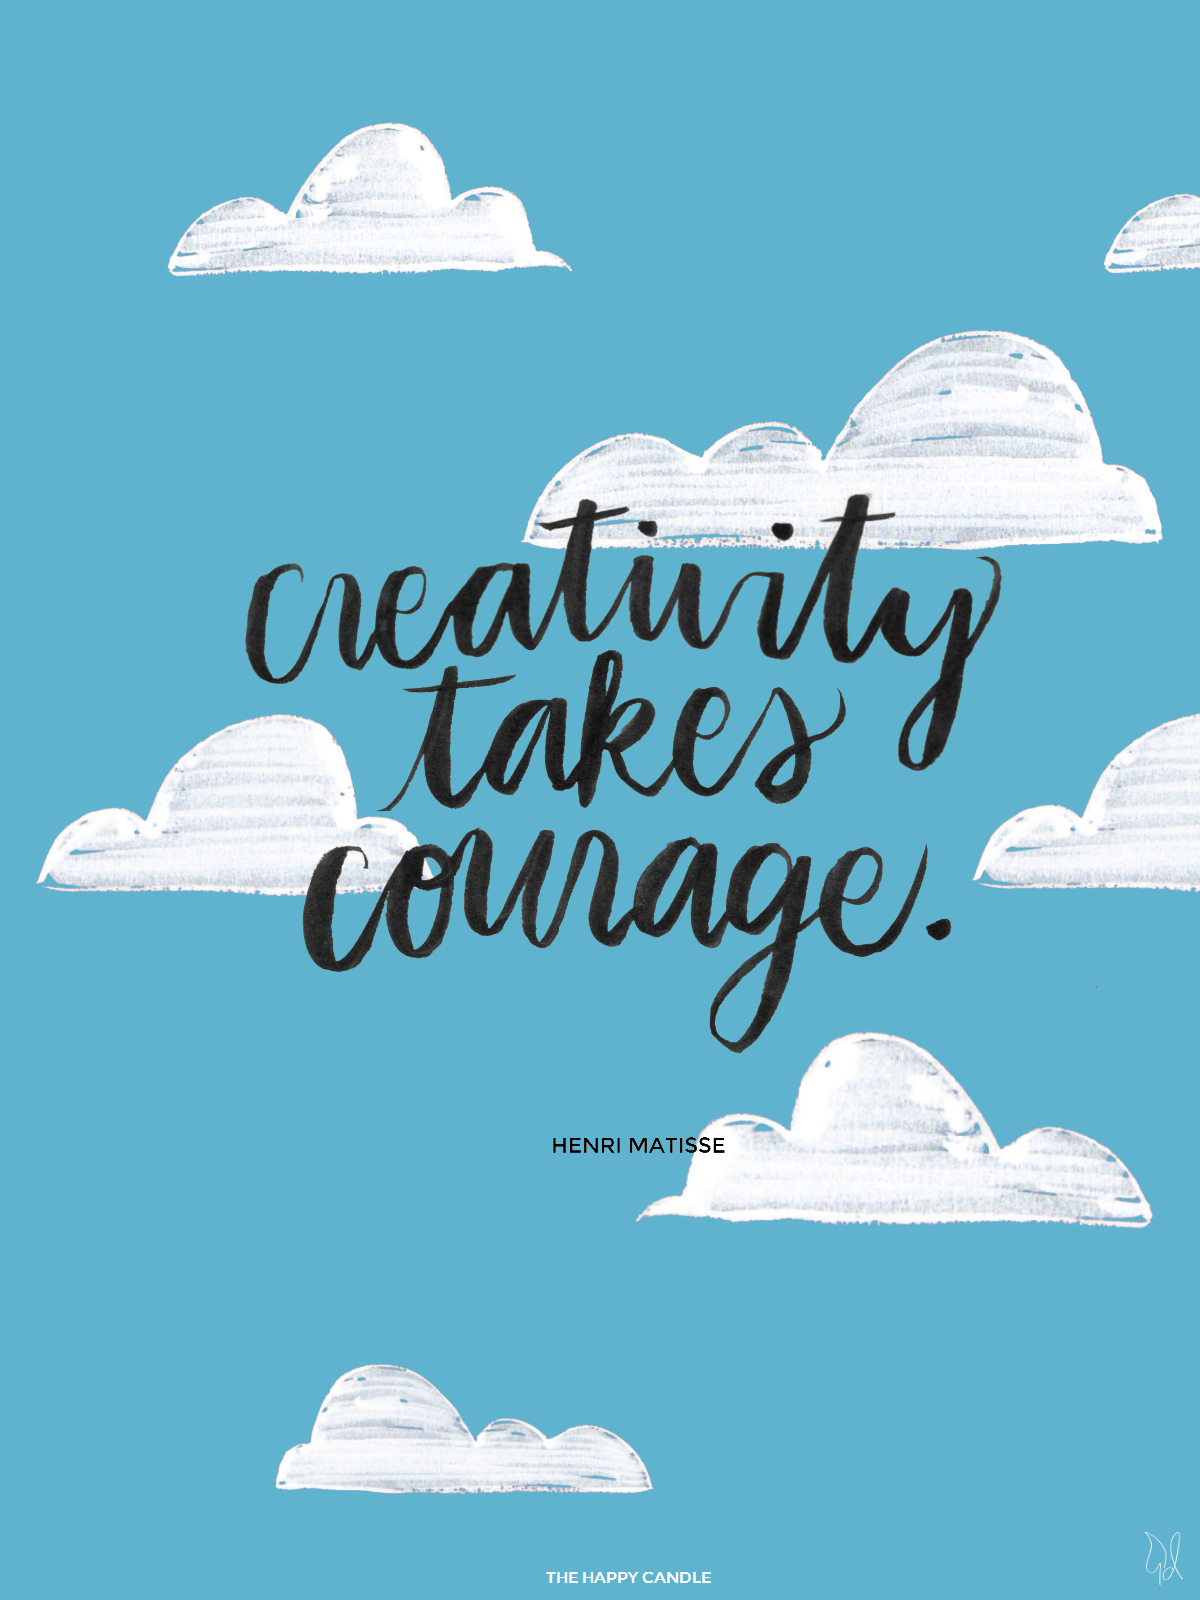 Created byThe Happy Candle / Creativity Quote Animation